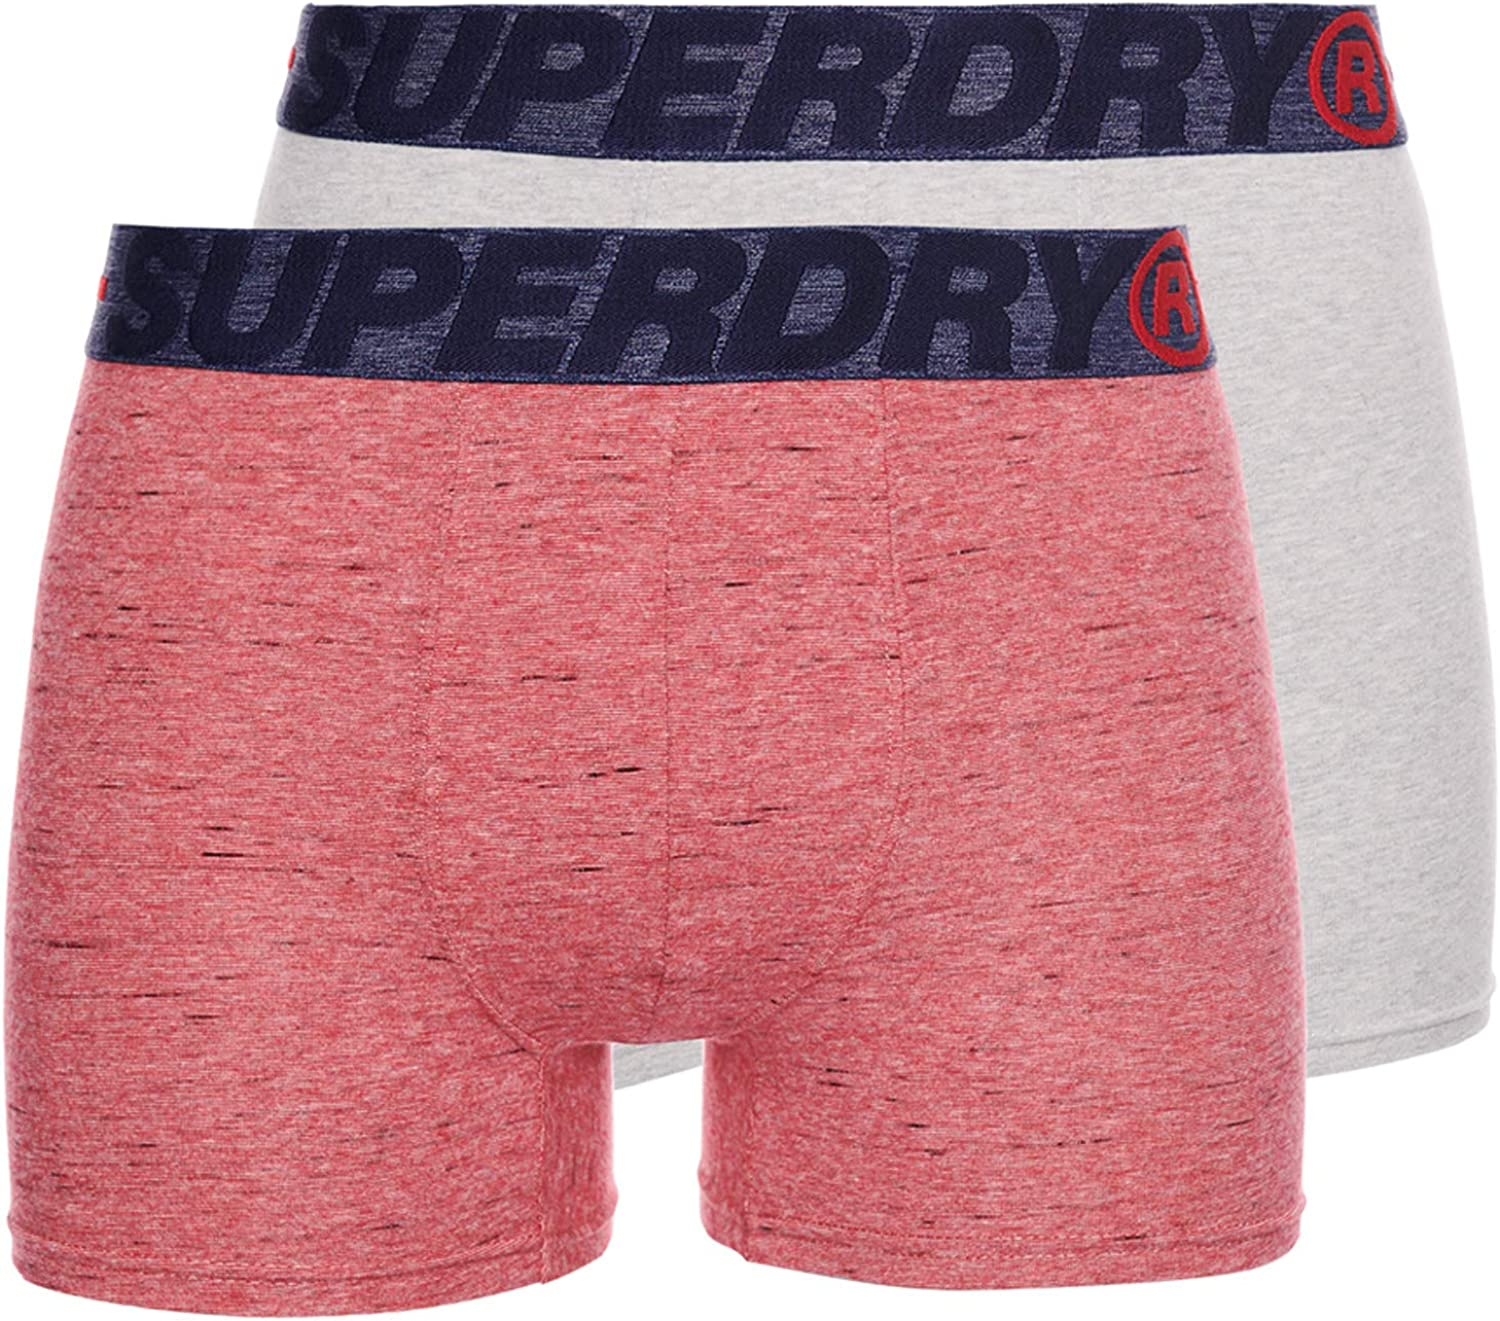 Red Multipack Boxer Shorts Superdry Men/'s Boxers Double Pack Small Medium Large